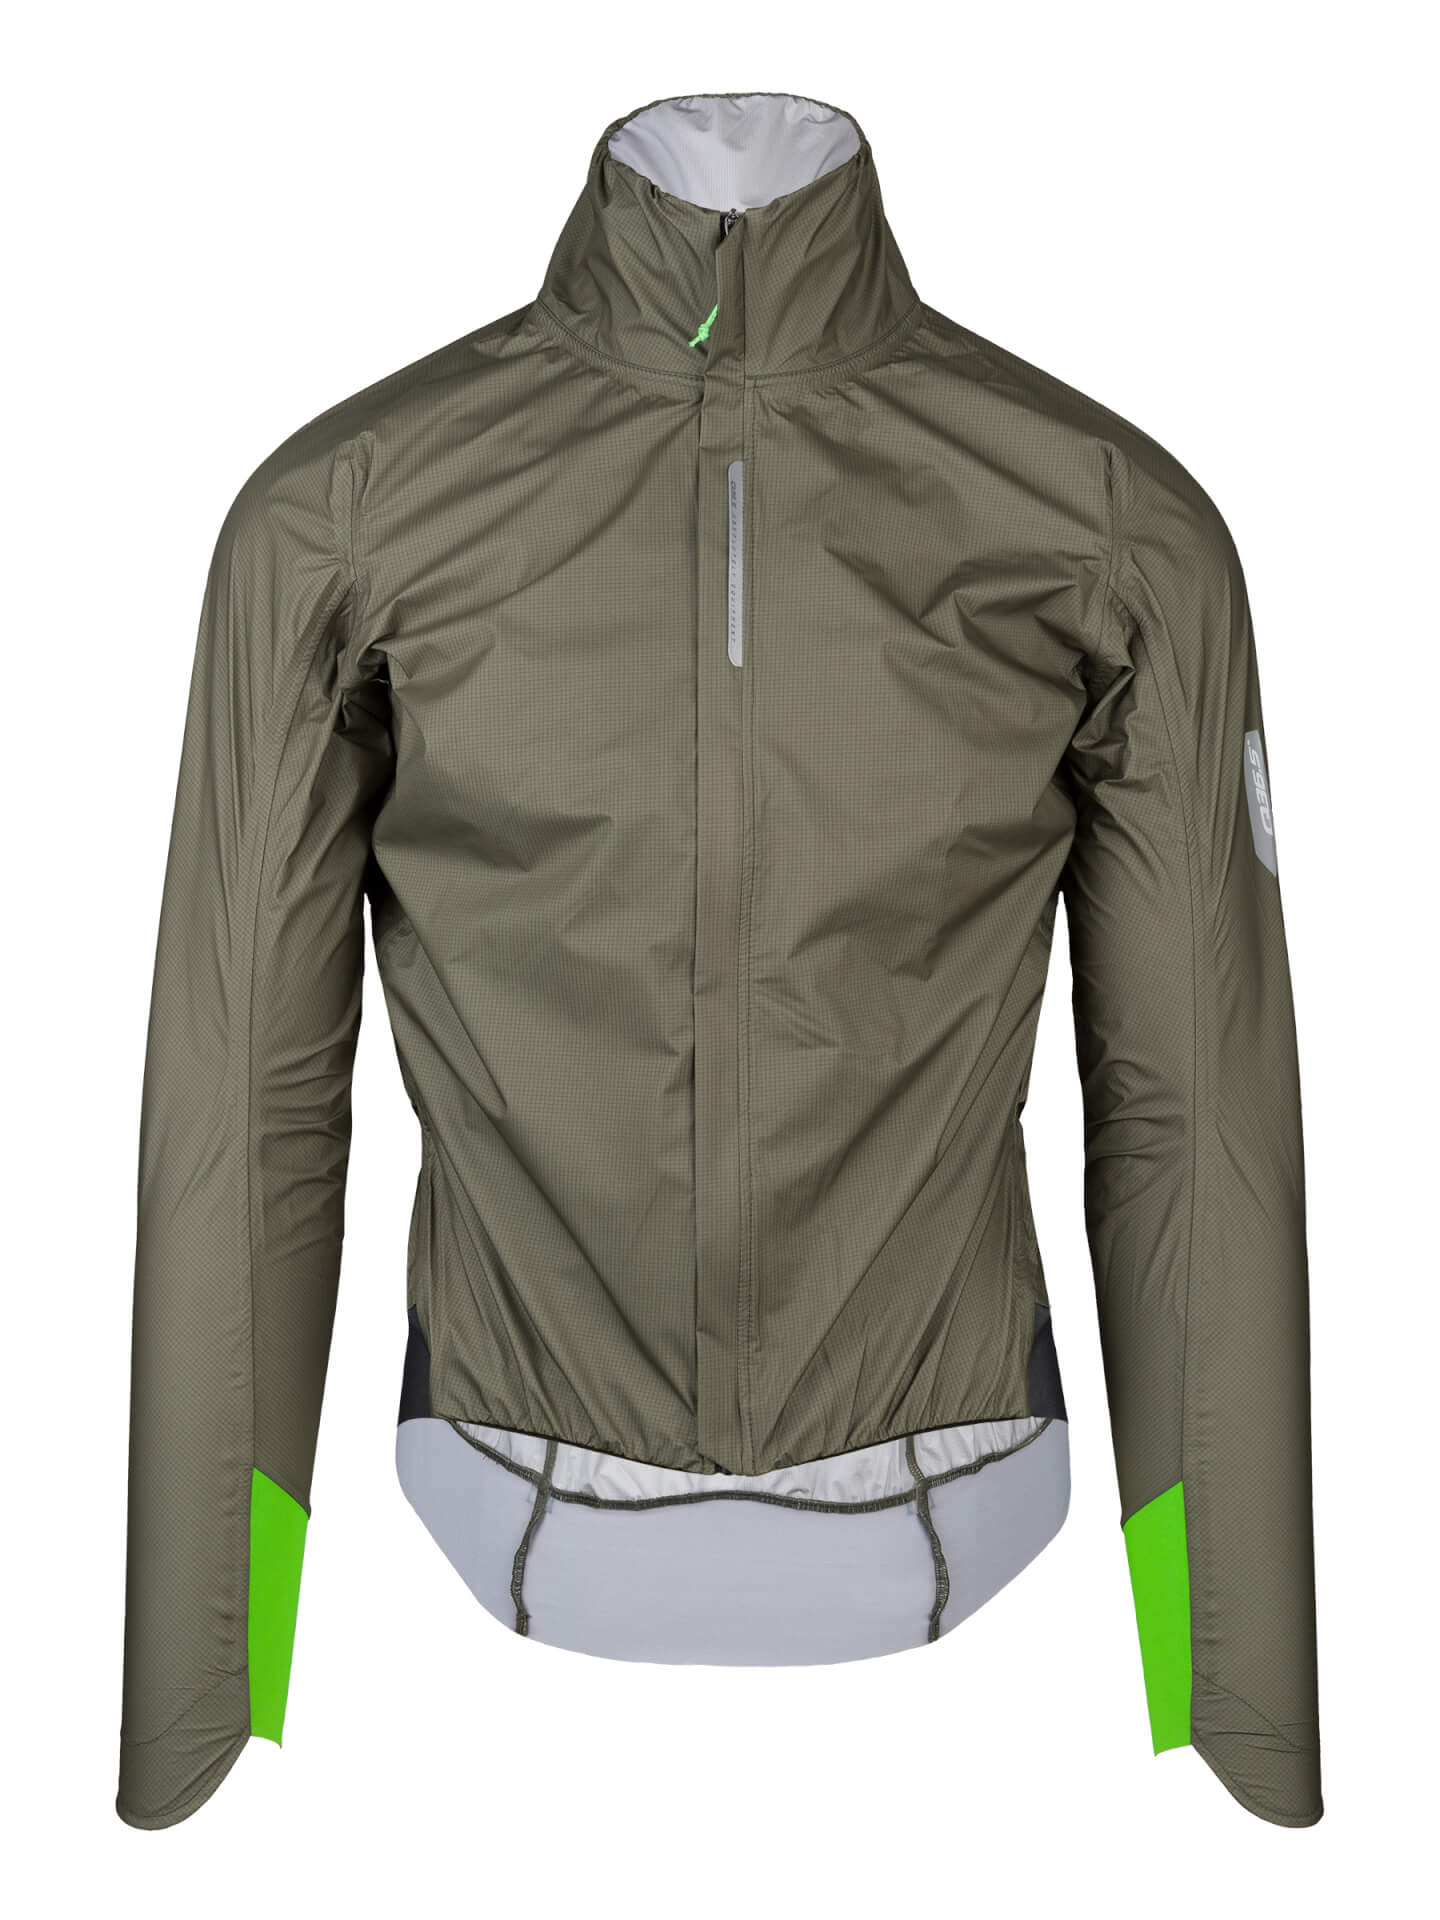 R.Shell Protection X, chaqueta ciclismo impermeable oliva